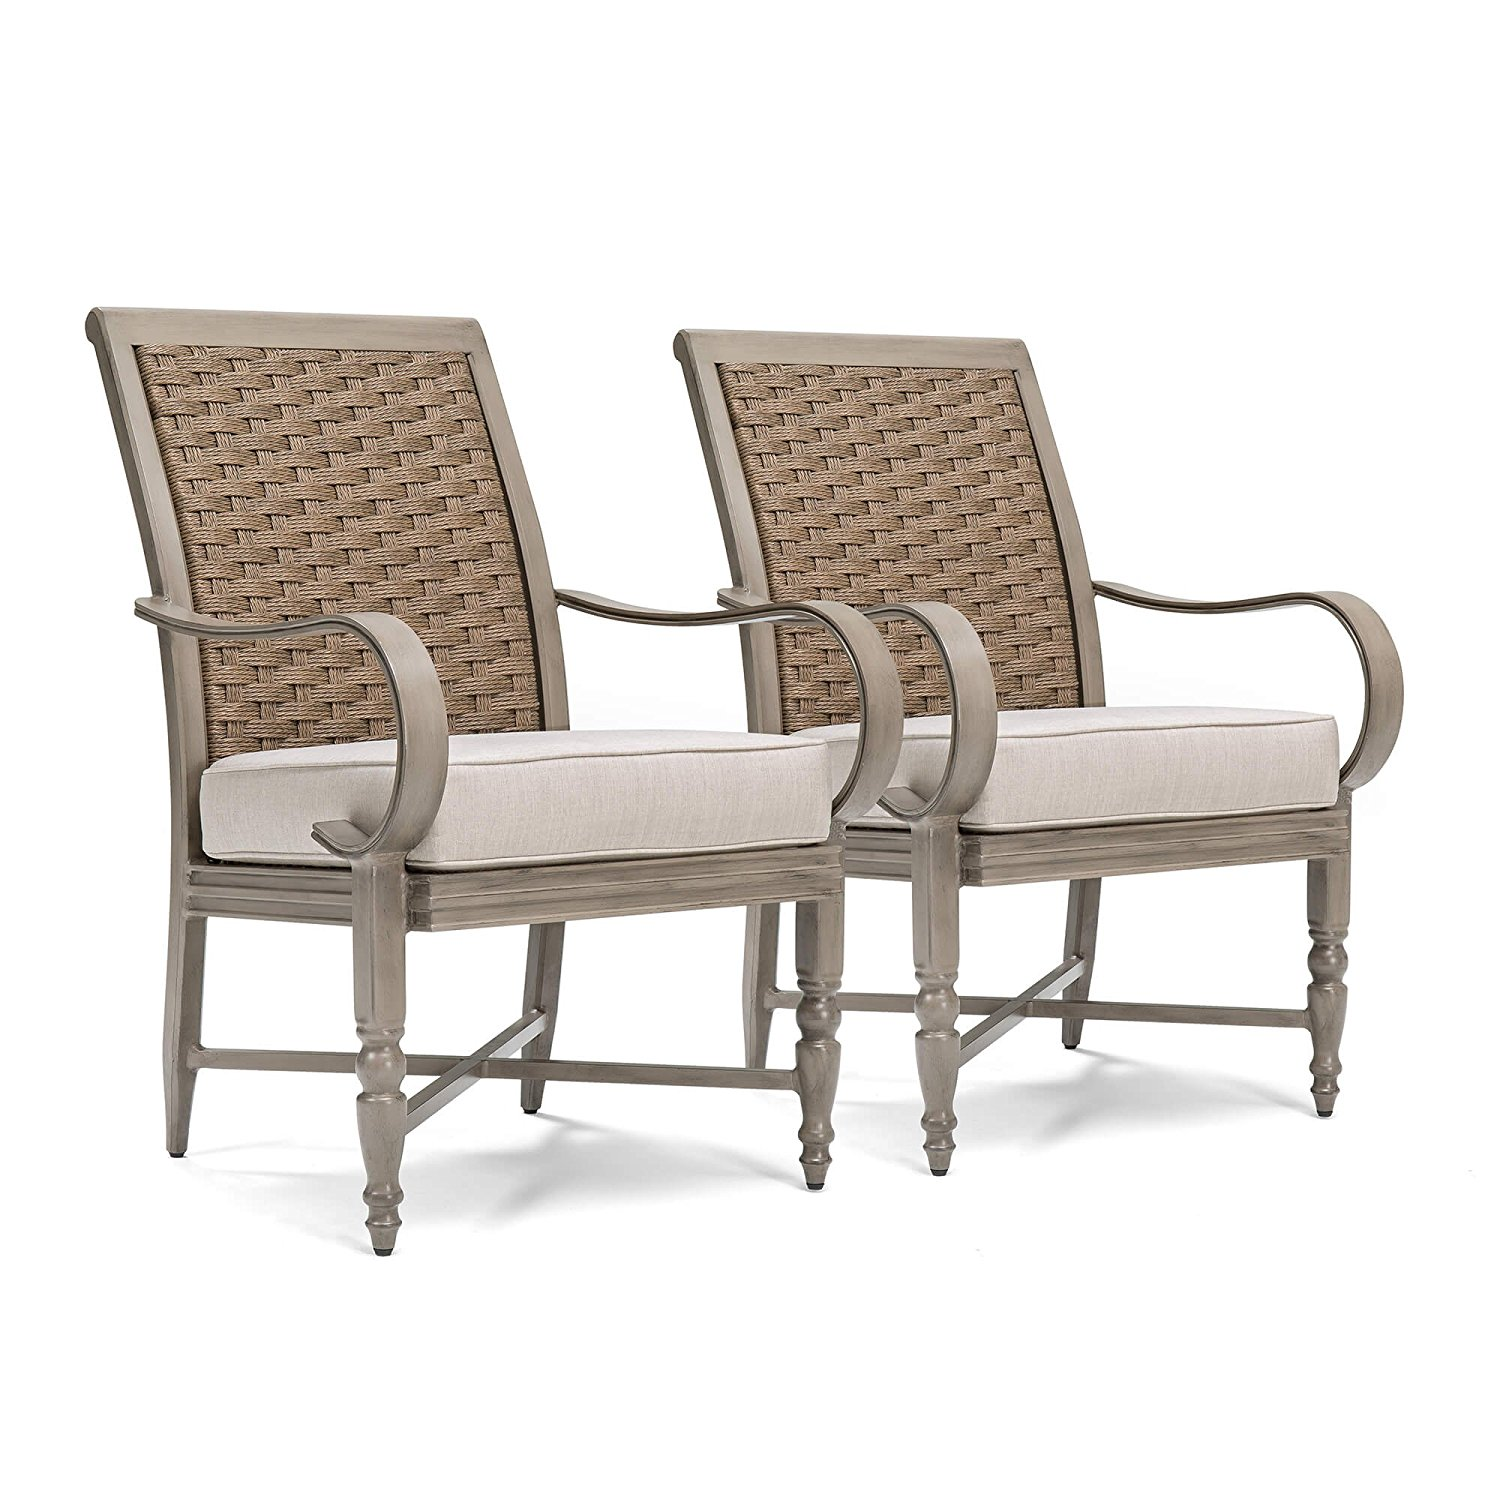 Blue Oak Outdoor Saylor Patio Furniture 2pk Stationary Dining Chair Set